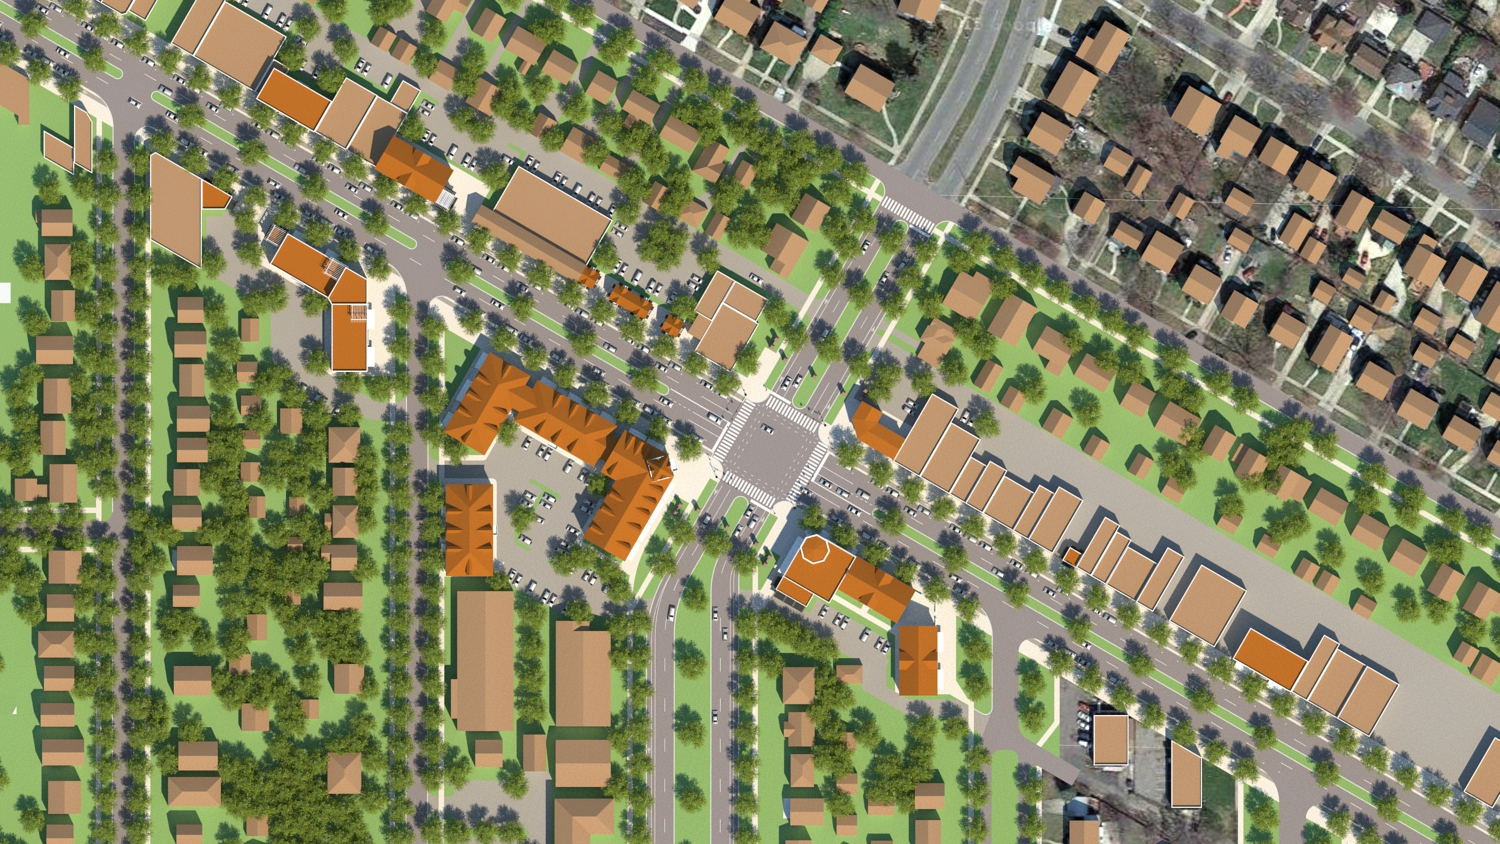 Grand River Ave & Outer Drive - Proposed Plan